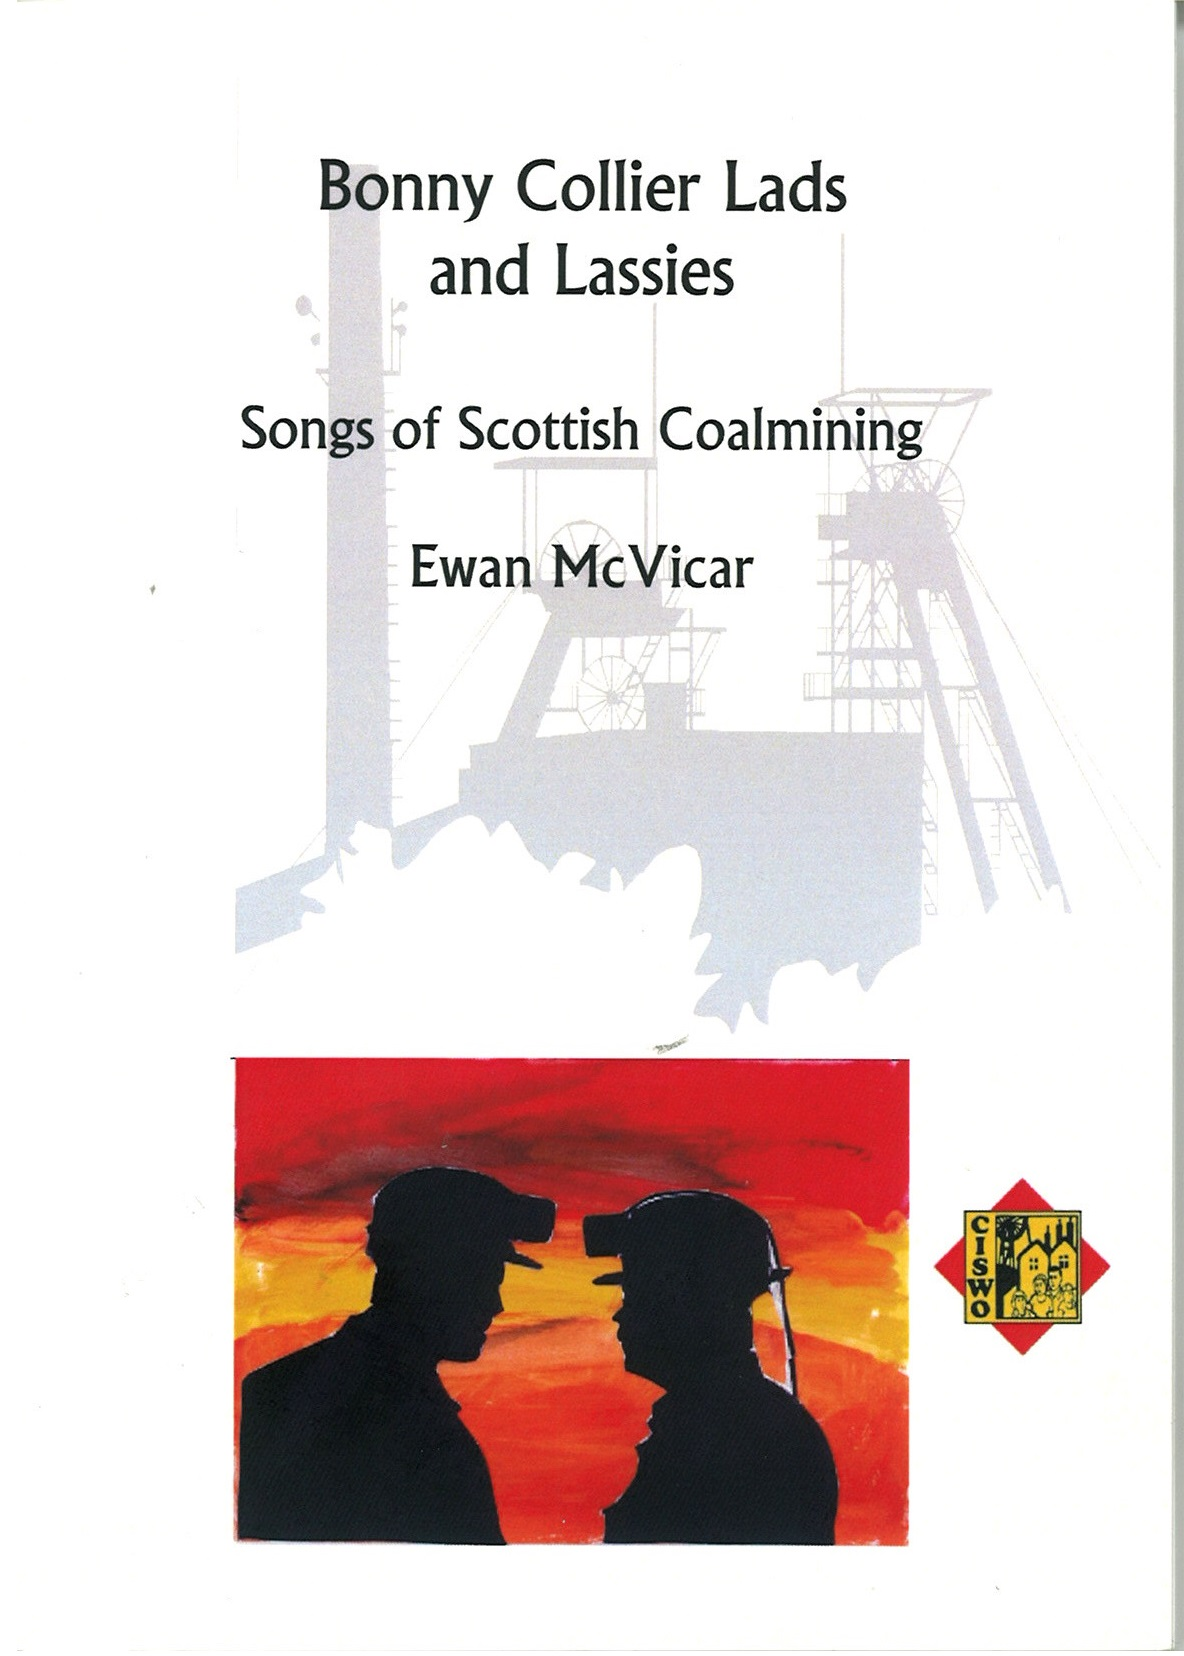 Bonny Collier Lads and Lassies (Songs of Scottish Coalmining).jpg